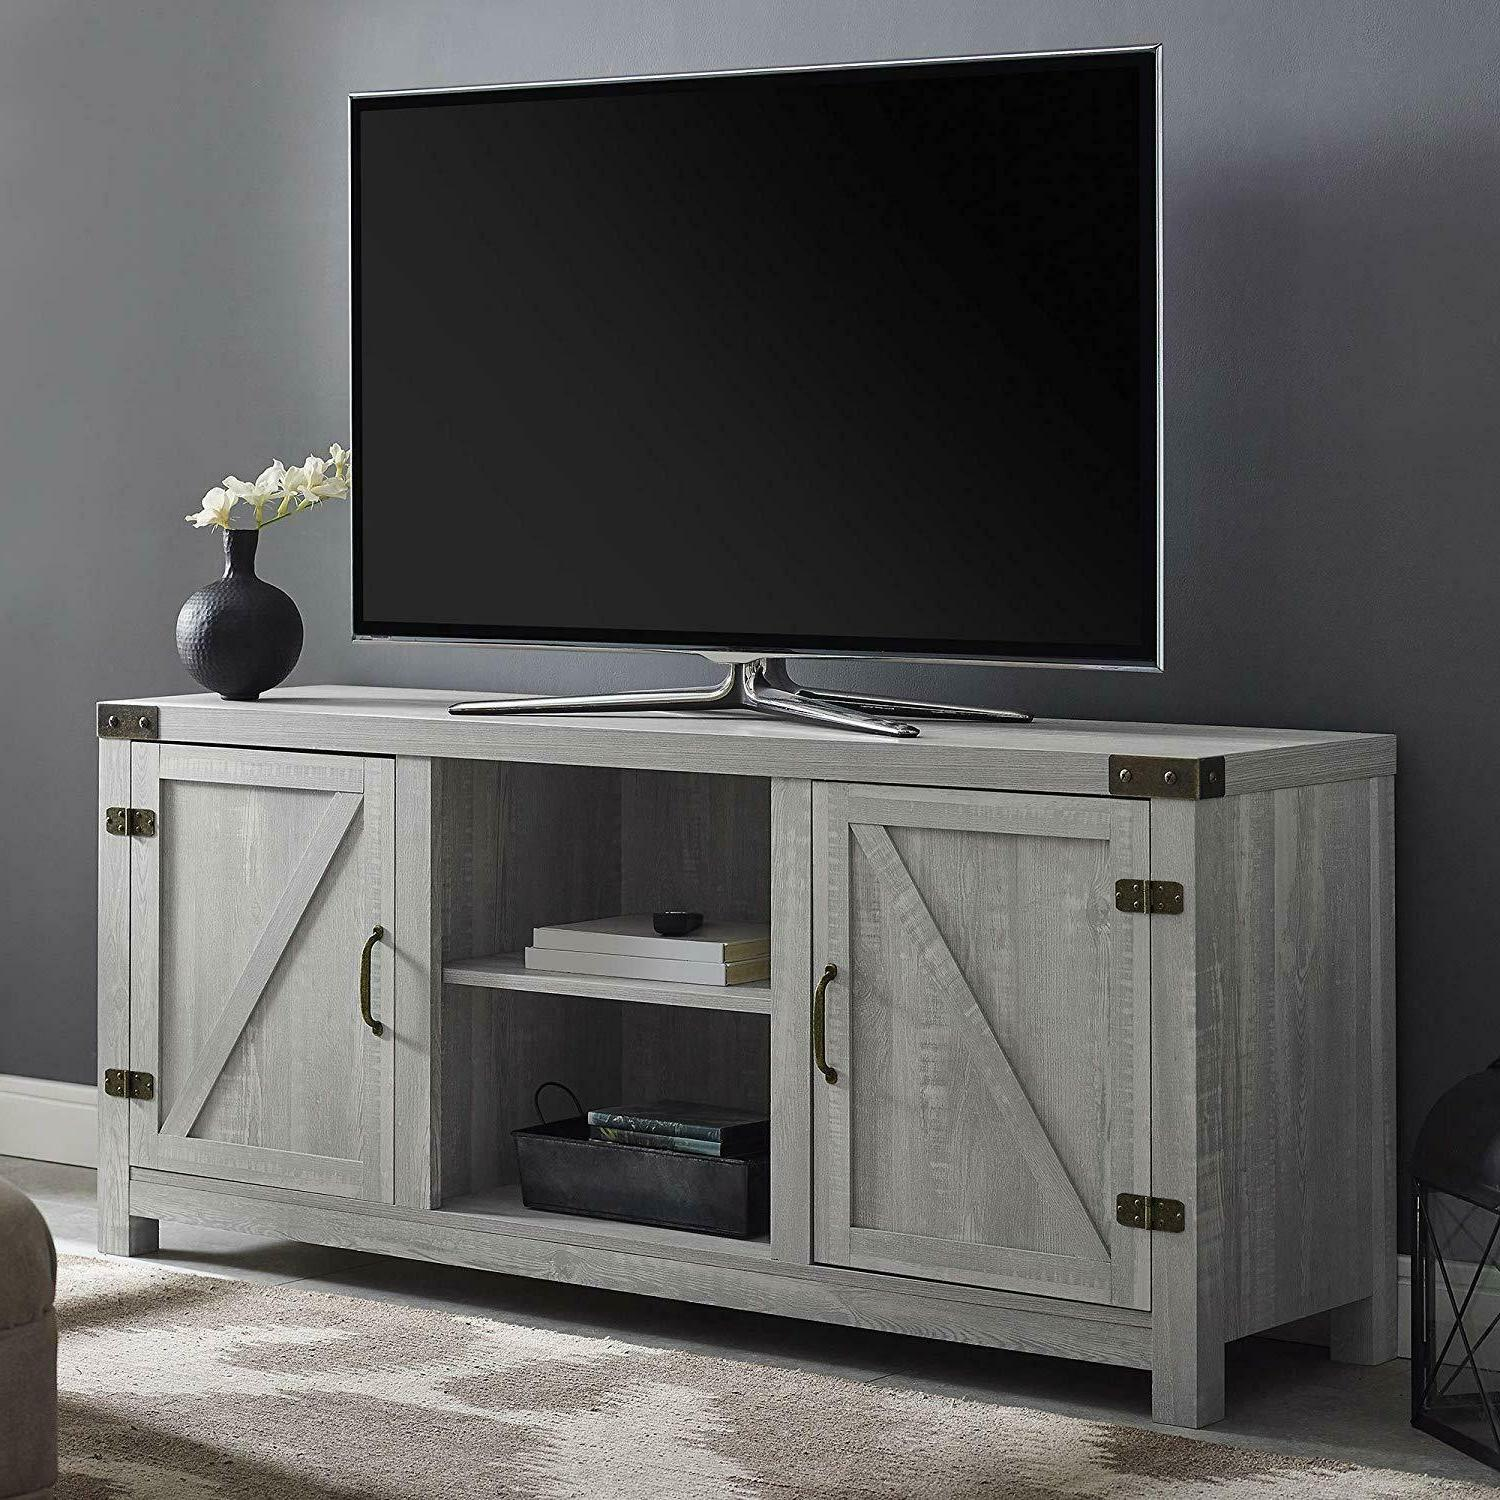 Living Room Furniture Tv For Bedroom Home Office Stand Wood